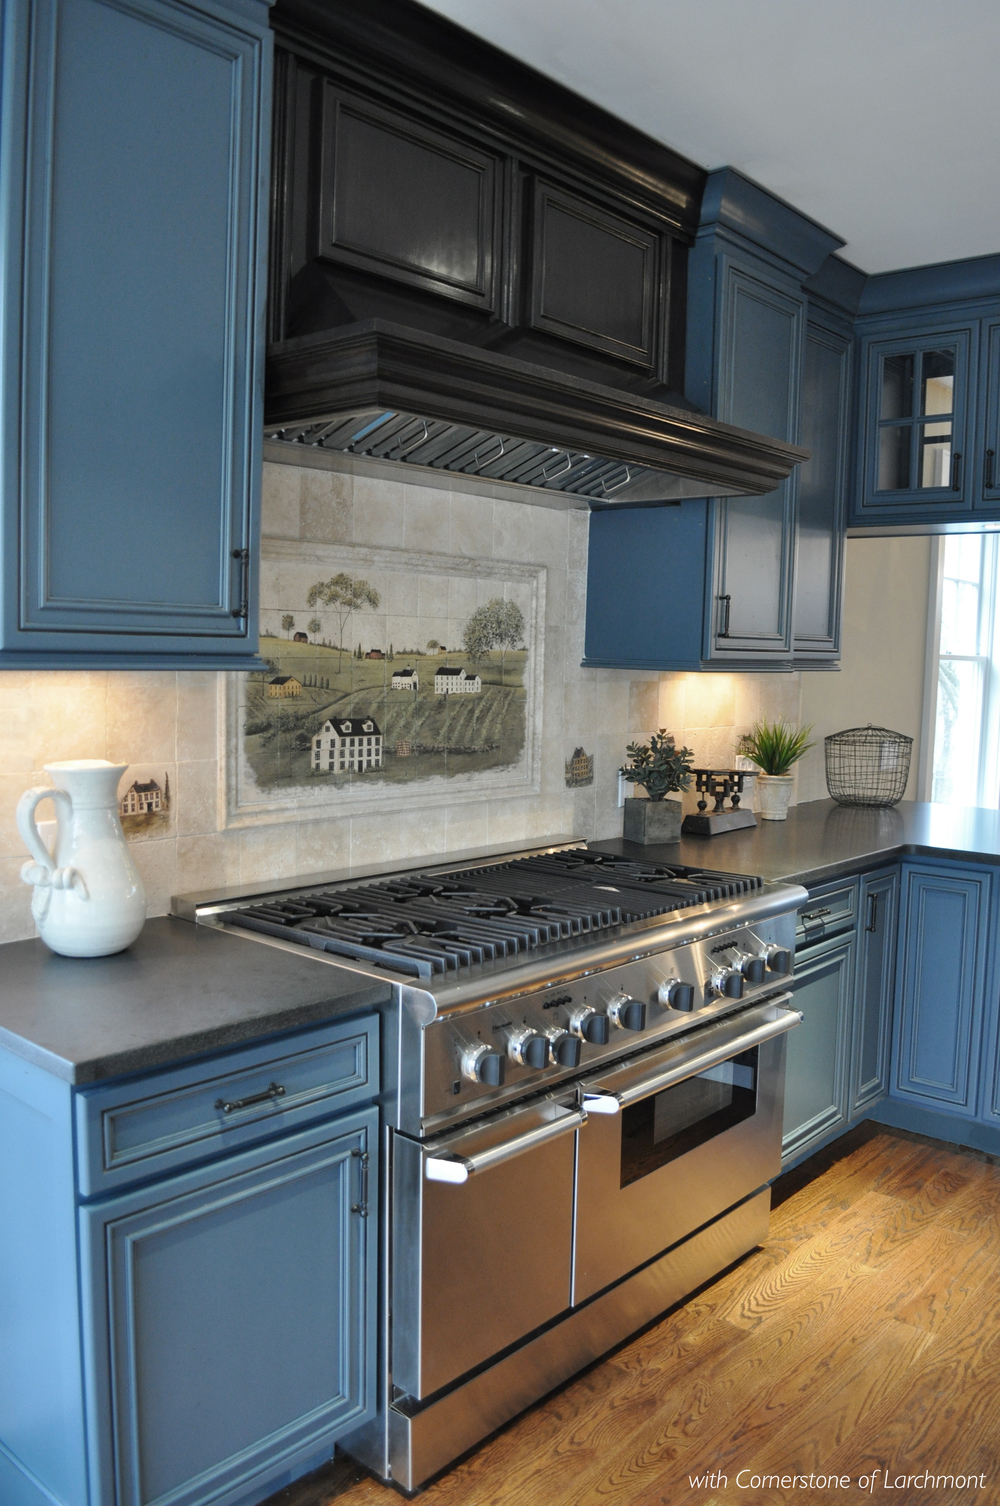 Kim Annick Mitchell_Interior Designer_Contemporary Country Kitchen_Blue Kitchen Cabinetry_Honed Granite Countertop.jpg